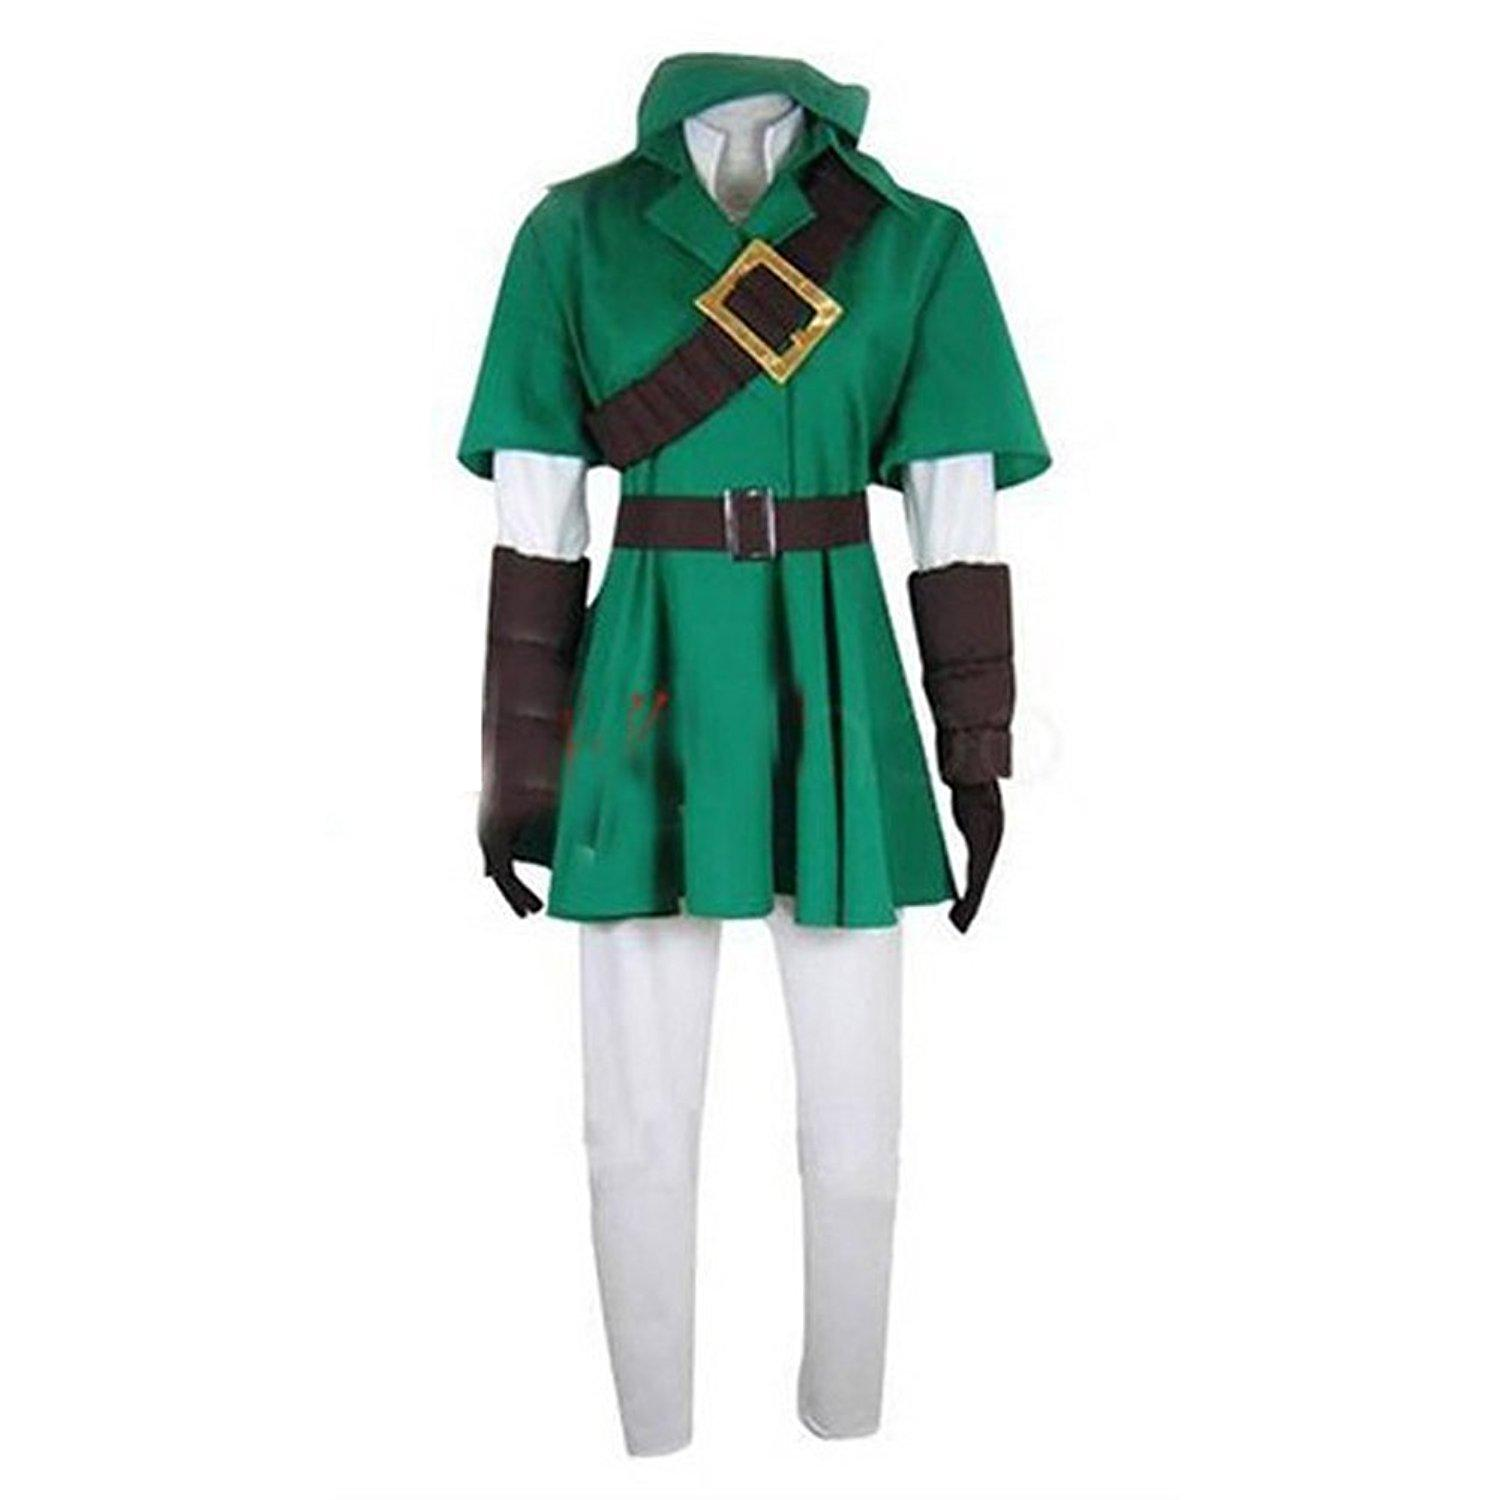 361db0b07 Kukucos Anime The Legend Of Zelda Link Cosplay Costume Halloween Party Dress  Up Suit Best Team Costumes Halloween Costumes For Office Group From  Kukucos, ...